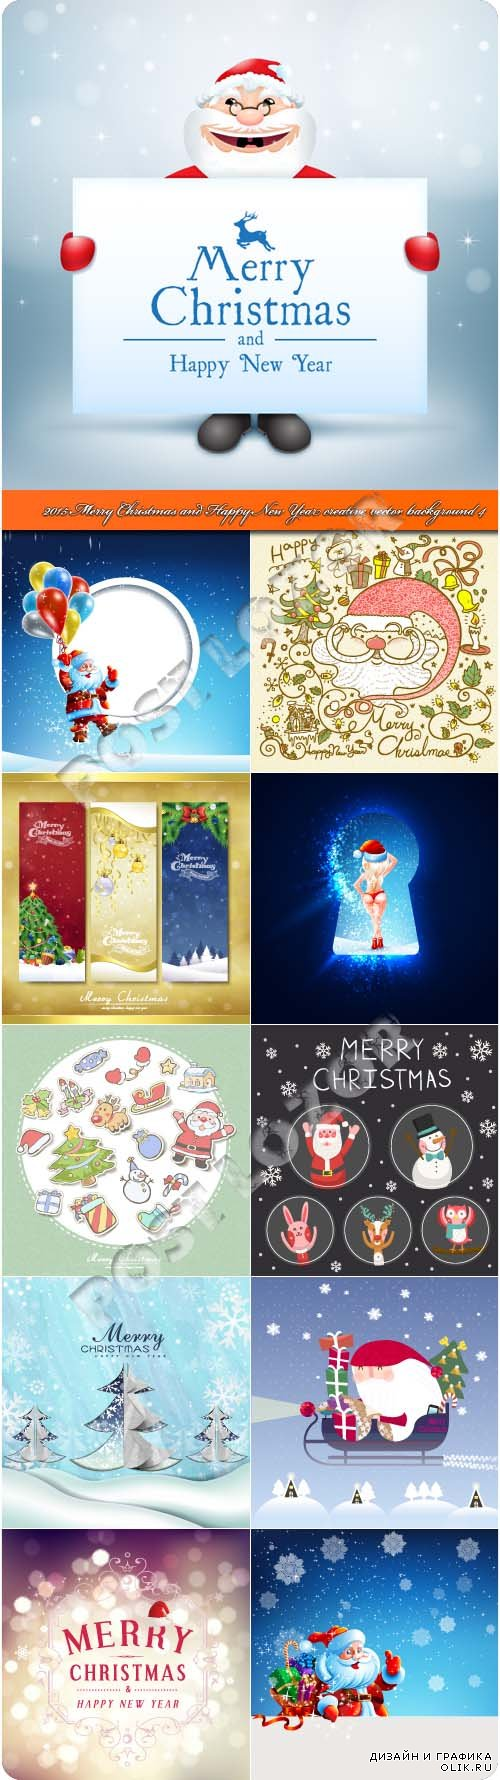 2015 Merry Christmas and Happy New Year creative vector background 4